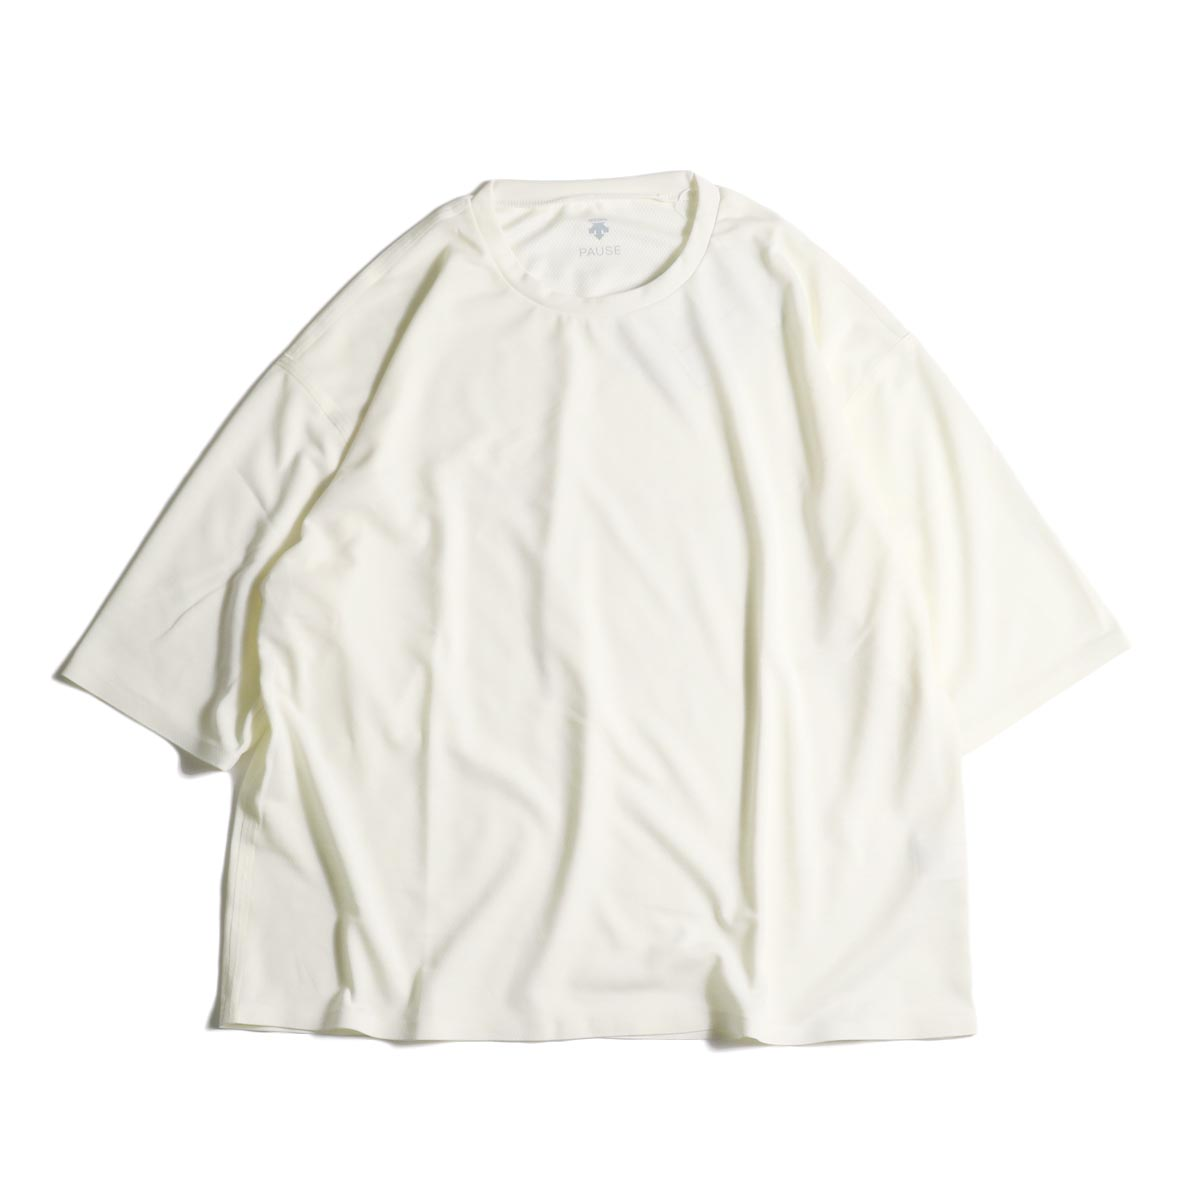 (Ladie's) DESCENTE PAUSE / ZEROSEAM BIG T-SHIRT (White)